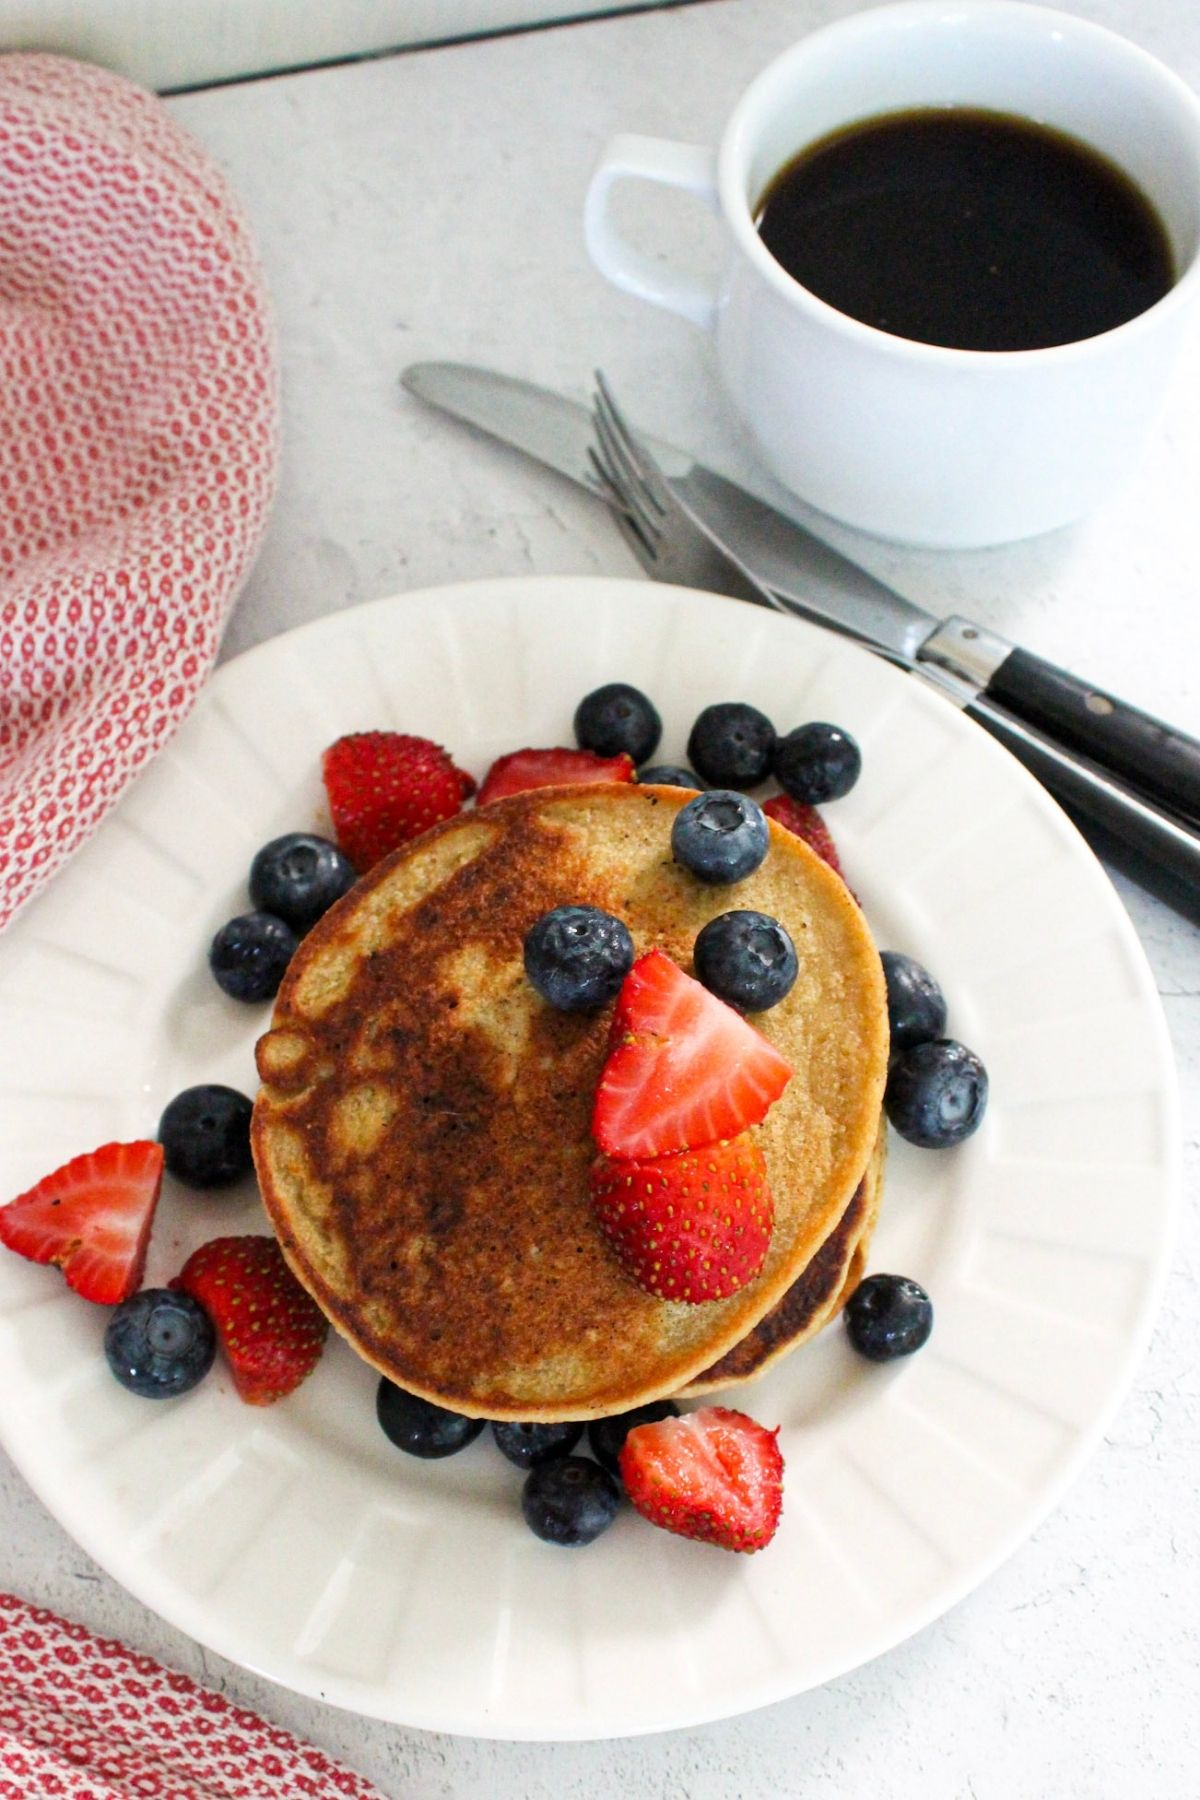 Vegan oatmeal banana pancakes topped with fresh fruit on a table with coffee.